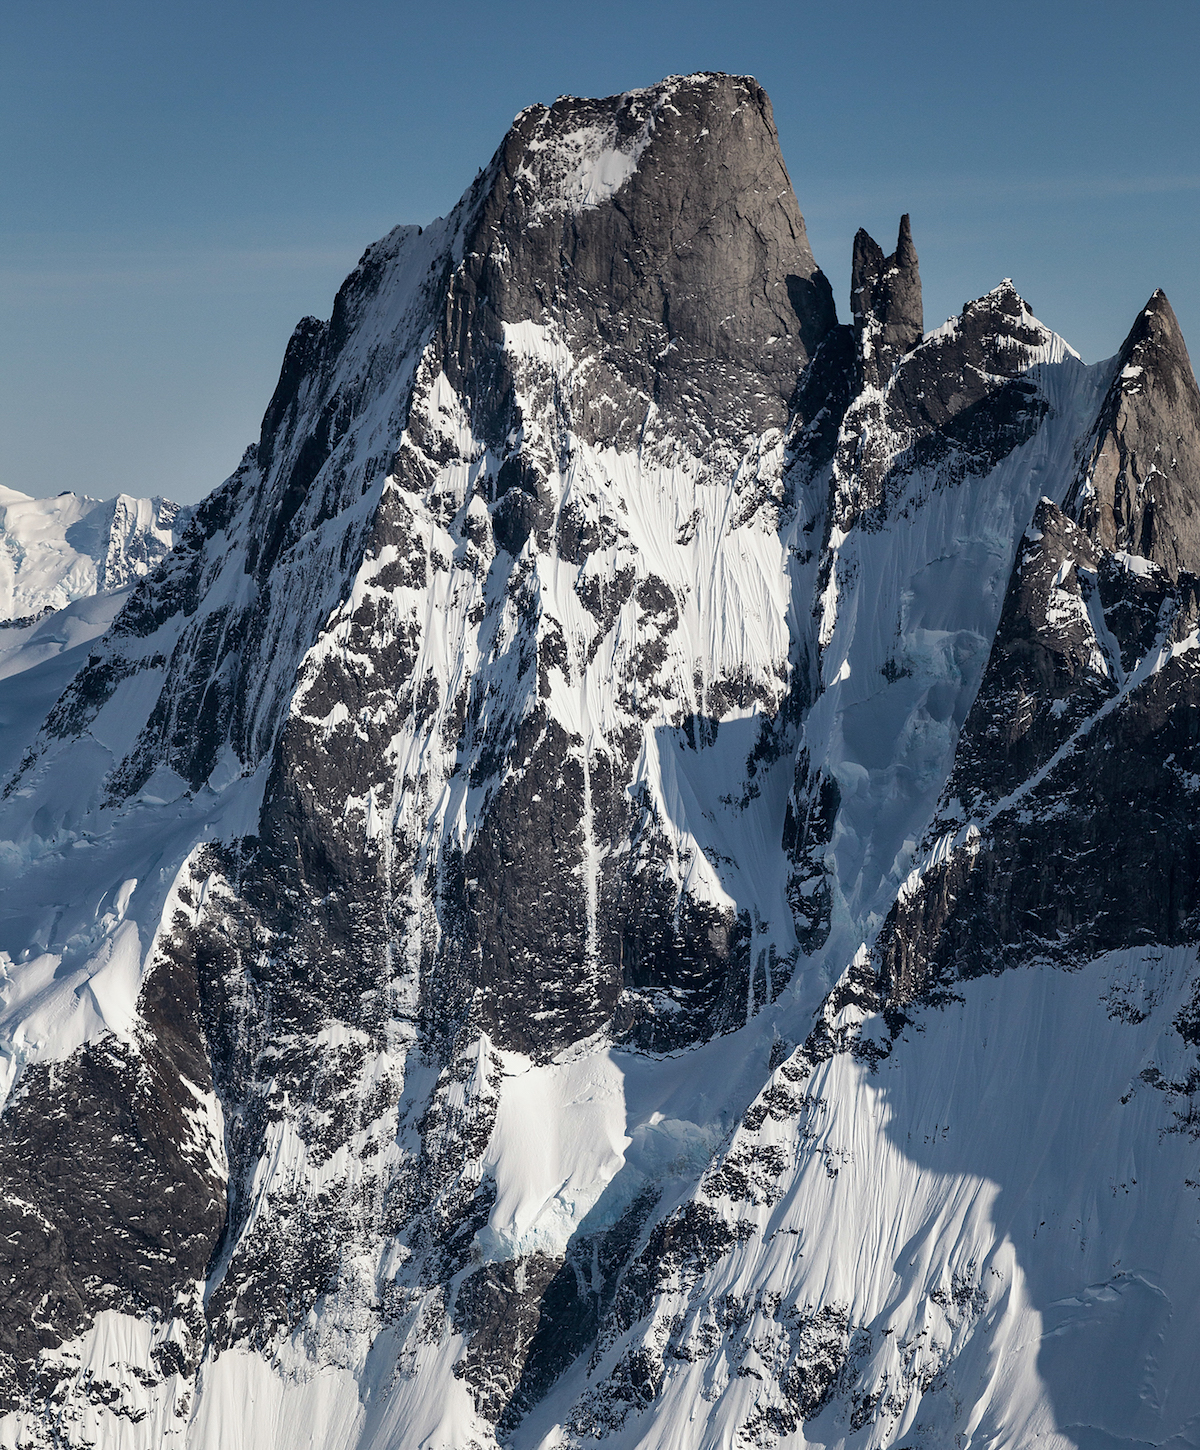 Devils Thumb, North Pillar (left) and northwest face (center). The face has never been climbed in its entirety. As Dieter Klose wrote in the 2003 American Alpine Journal, The wild face, discovered well over two decades ago, ends on a very specific summit. Here are all the makings of both post-modern and futuristic alpinism, yet it simply has not, does not, and seems not to be do-able. [Photo] John Scurlock